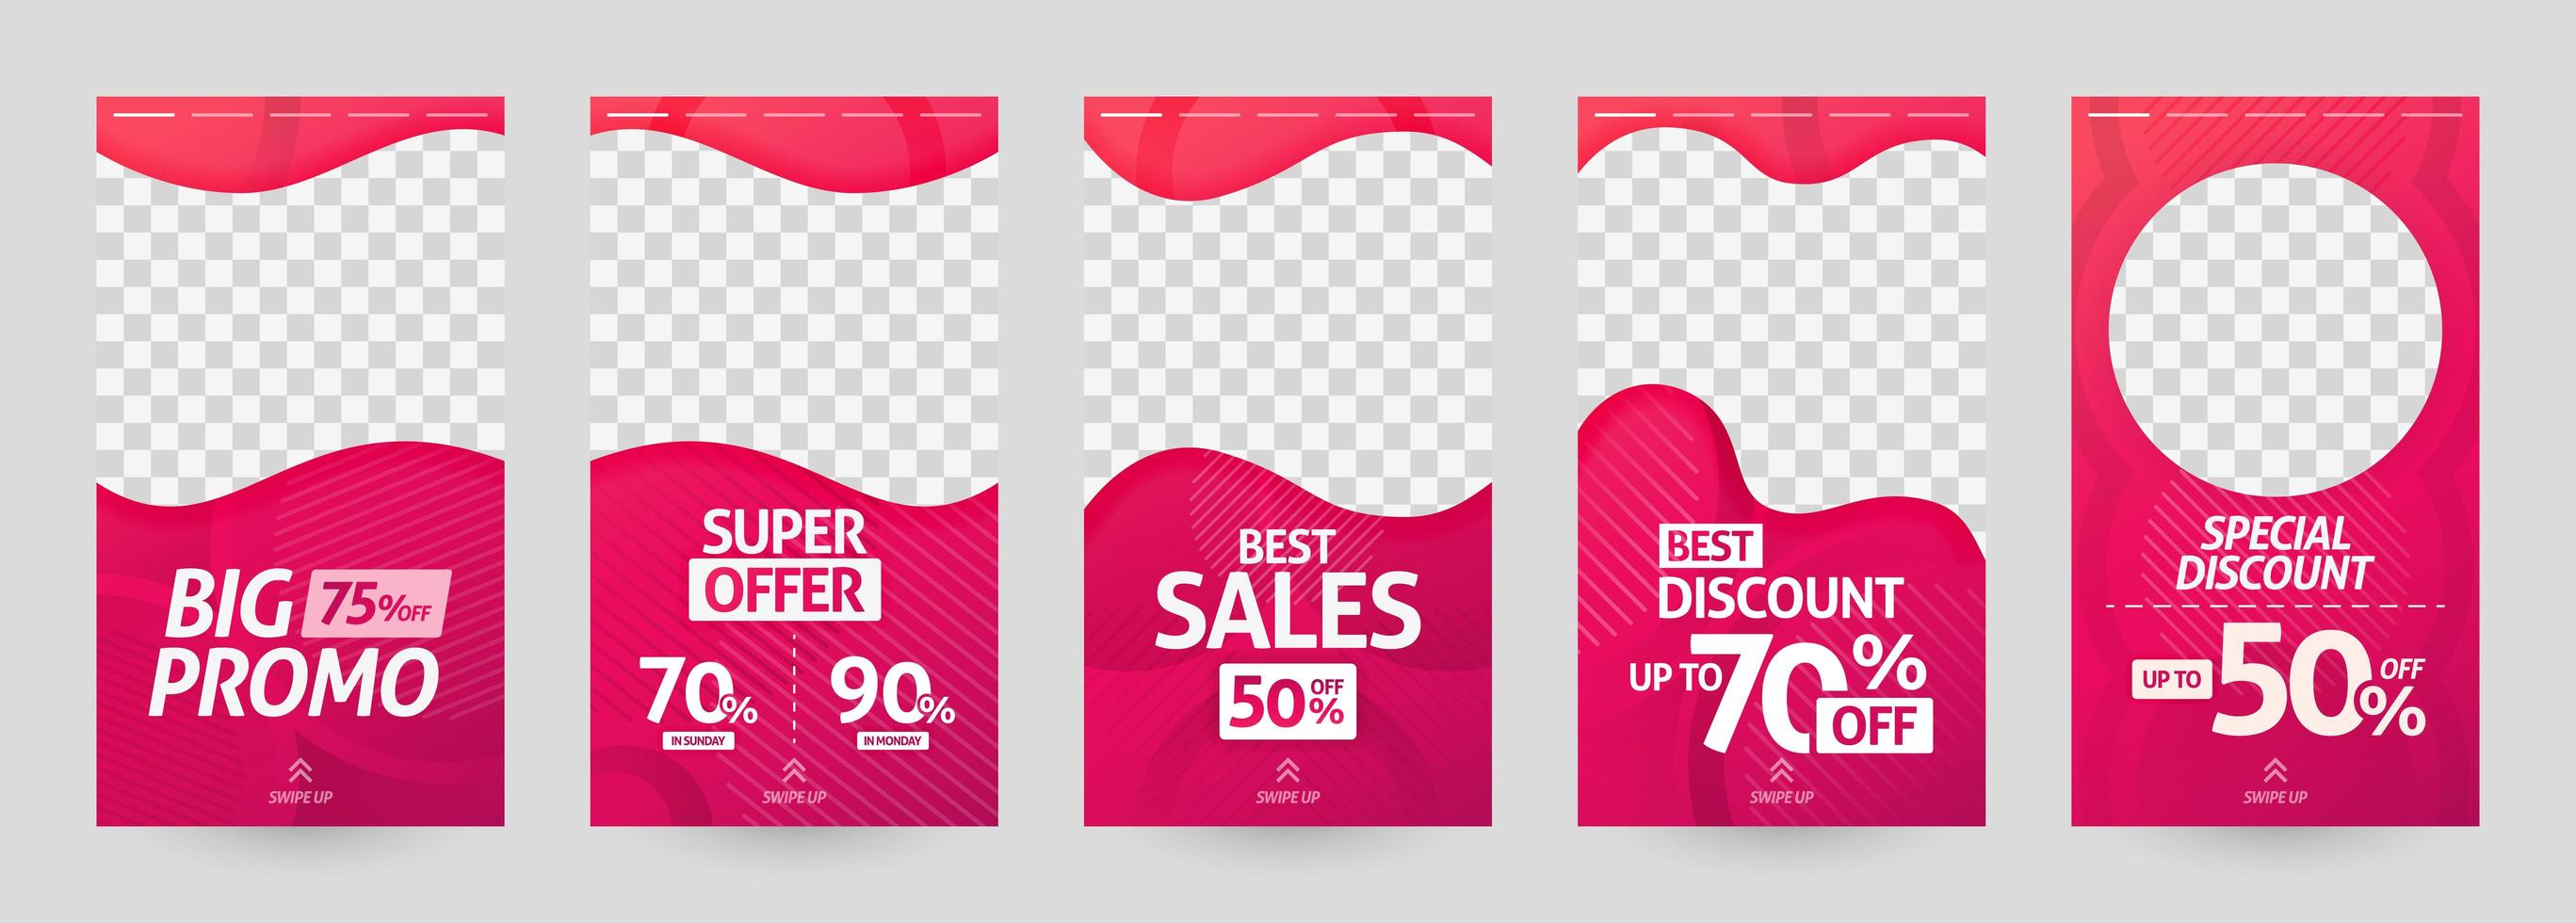 abstract illustrations of social media story template. post discount and sale for fashion and modern retail. advertising, marketing, promotion for online. digital print brochure, flyer, banner, card vector